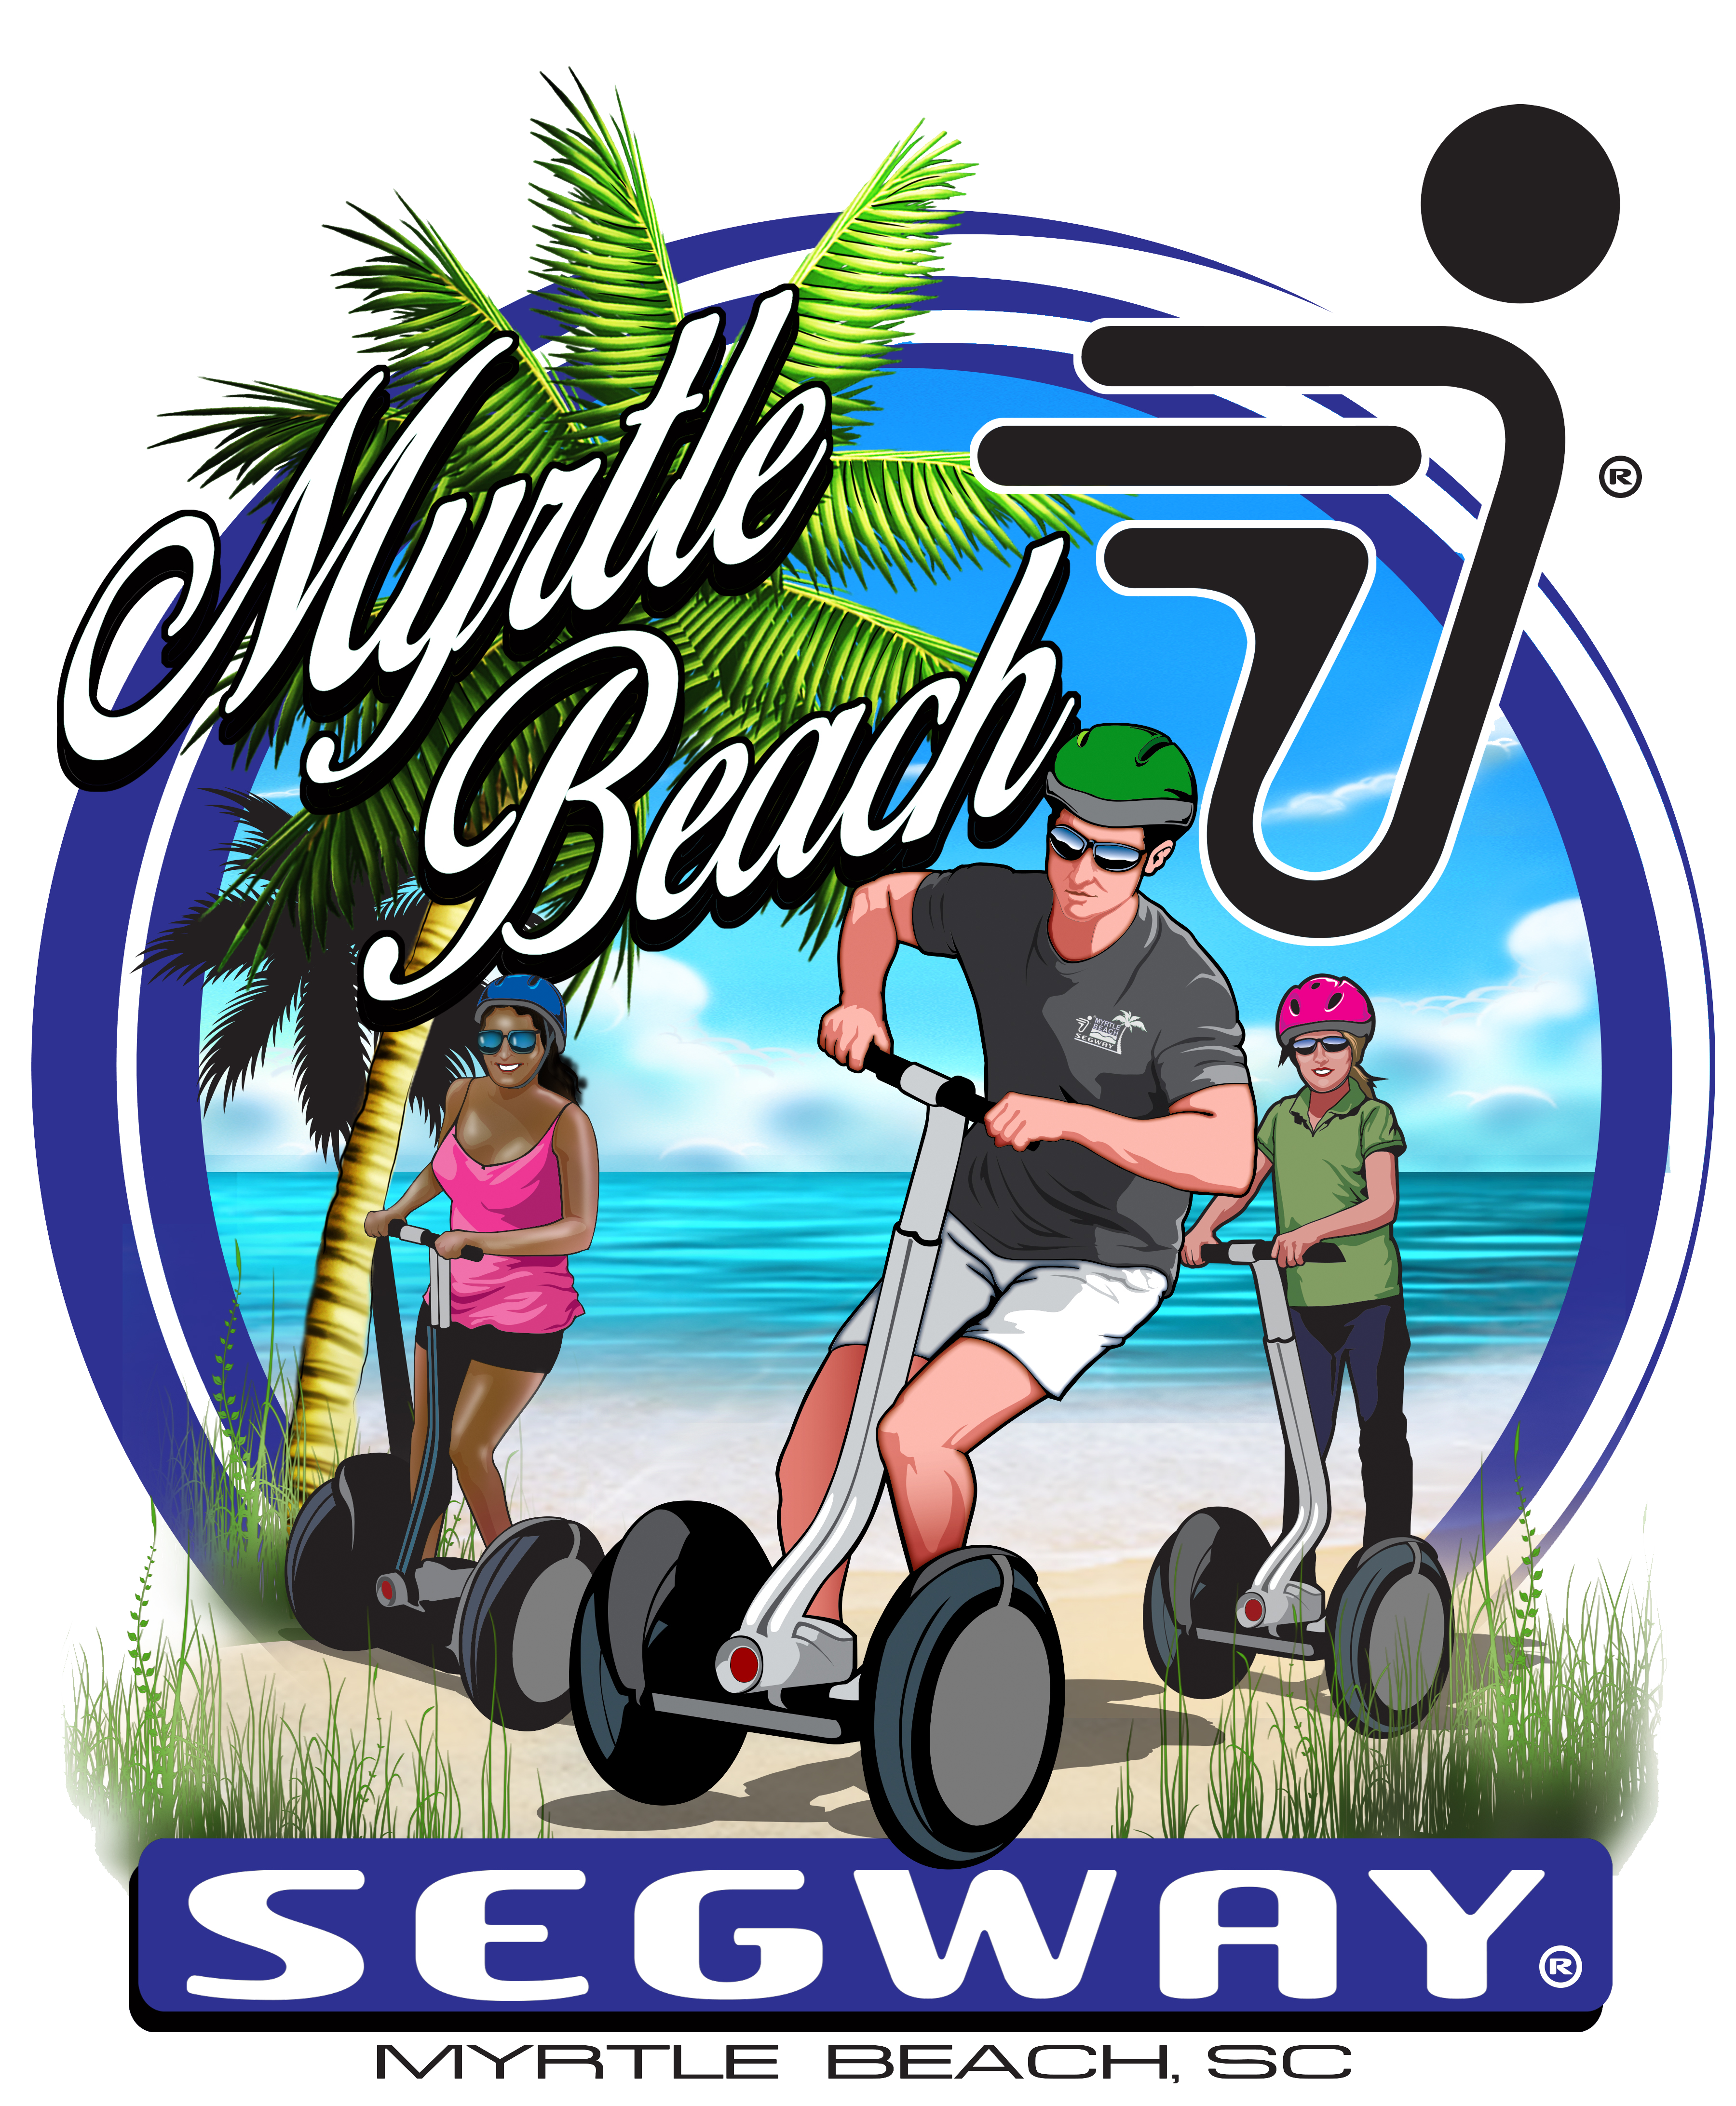 Myrtle segway tours rentals. Clipart beach outing